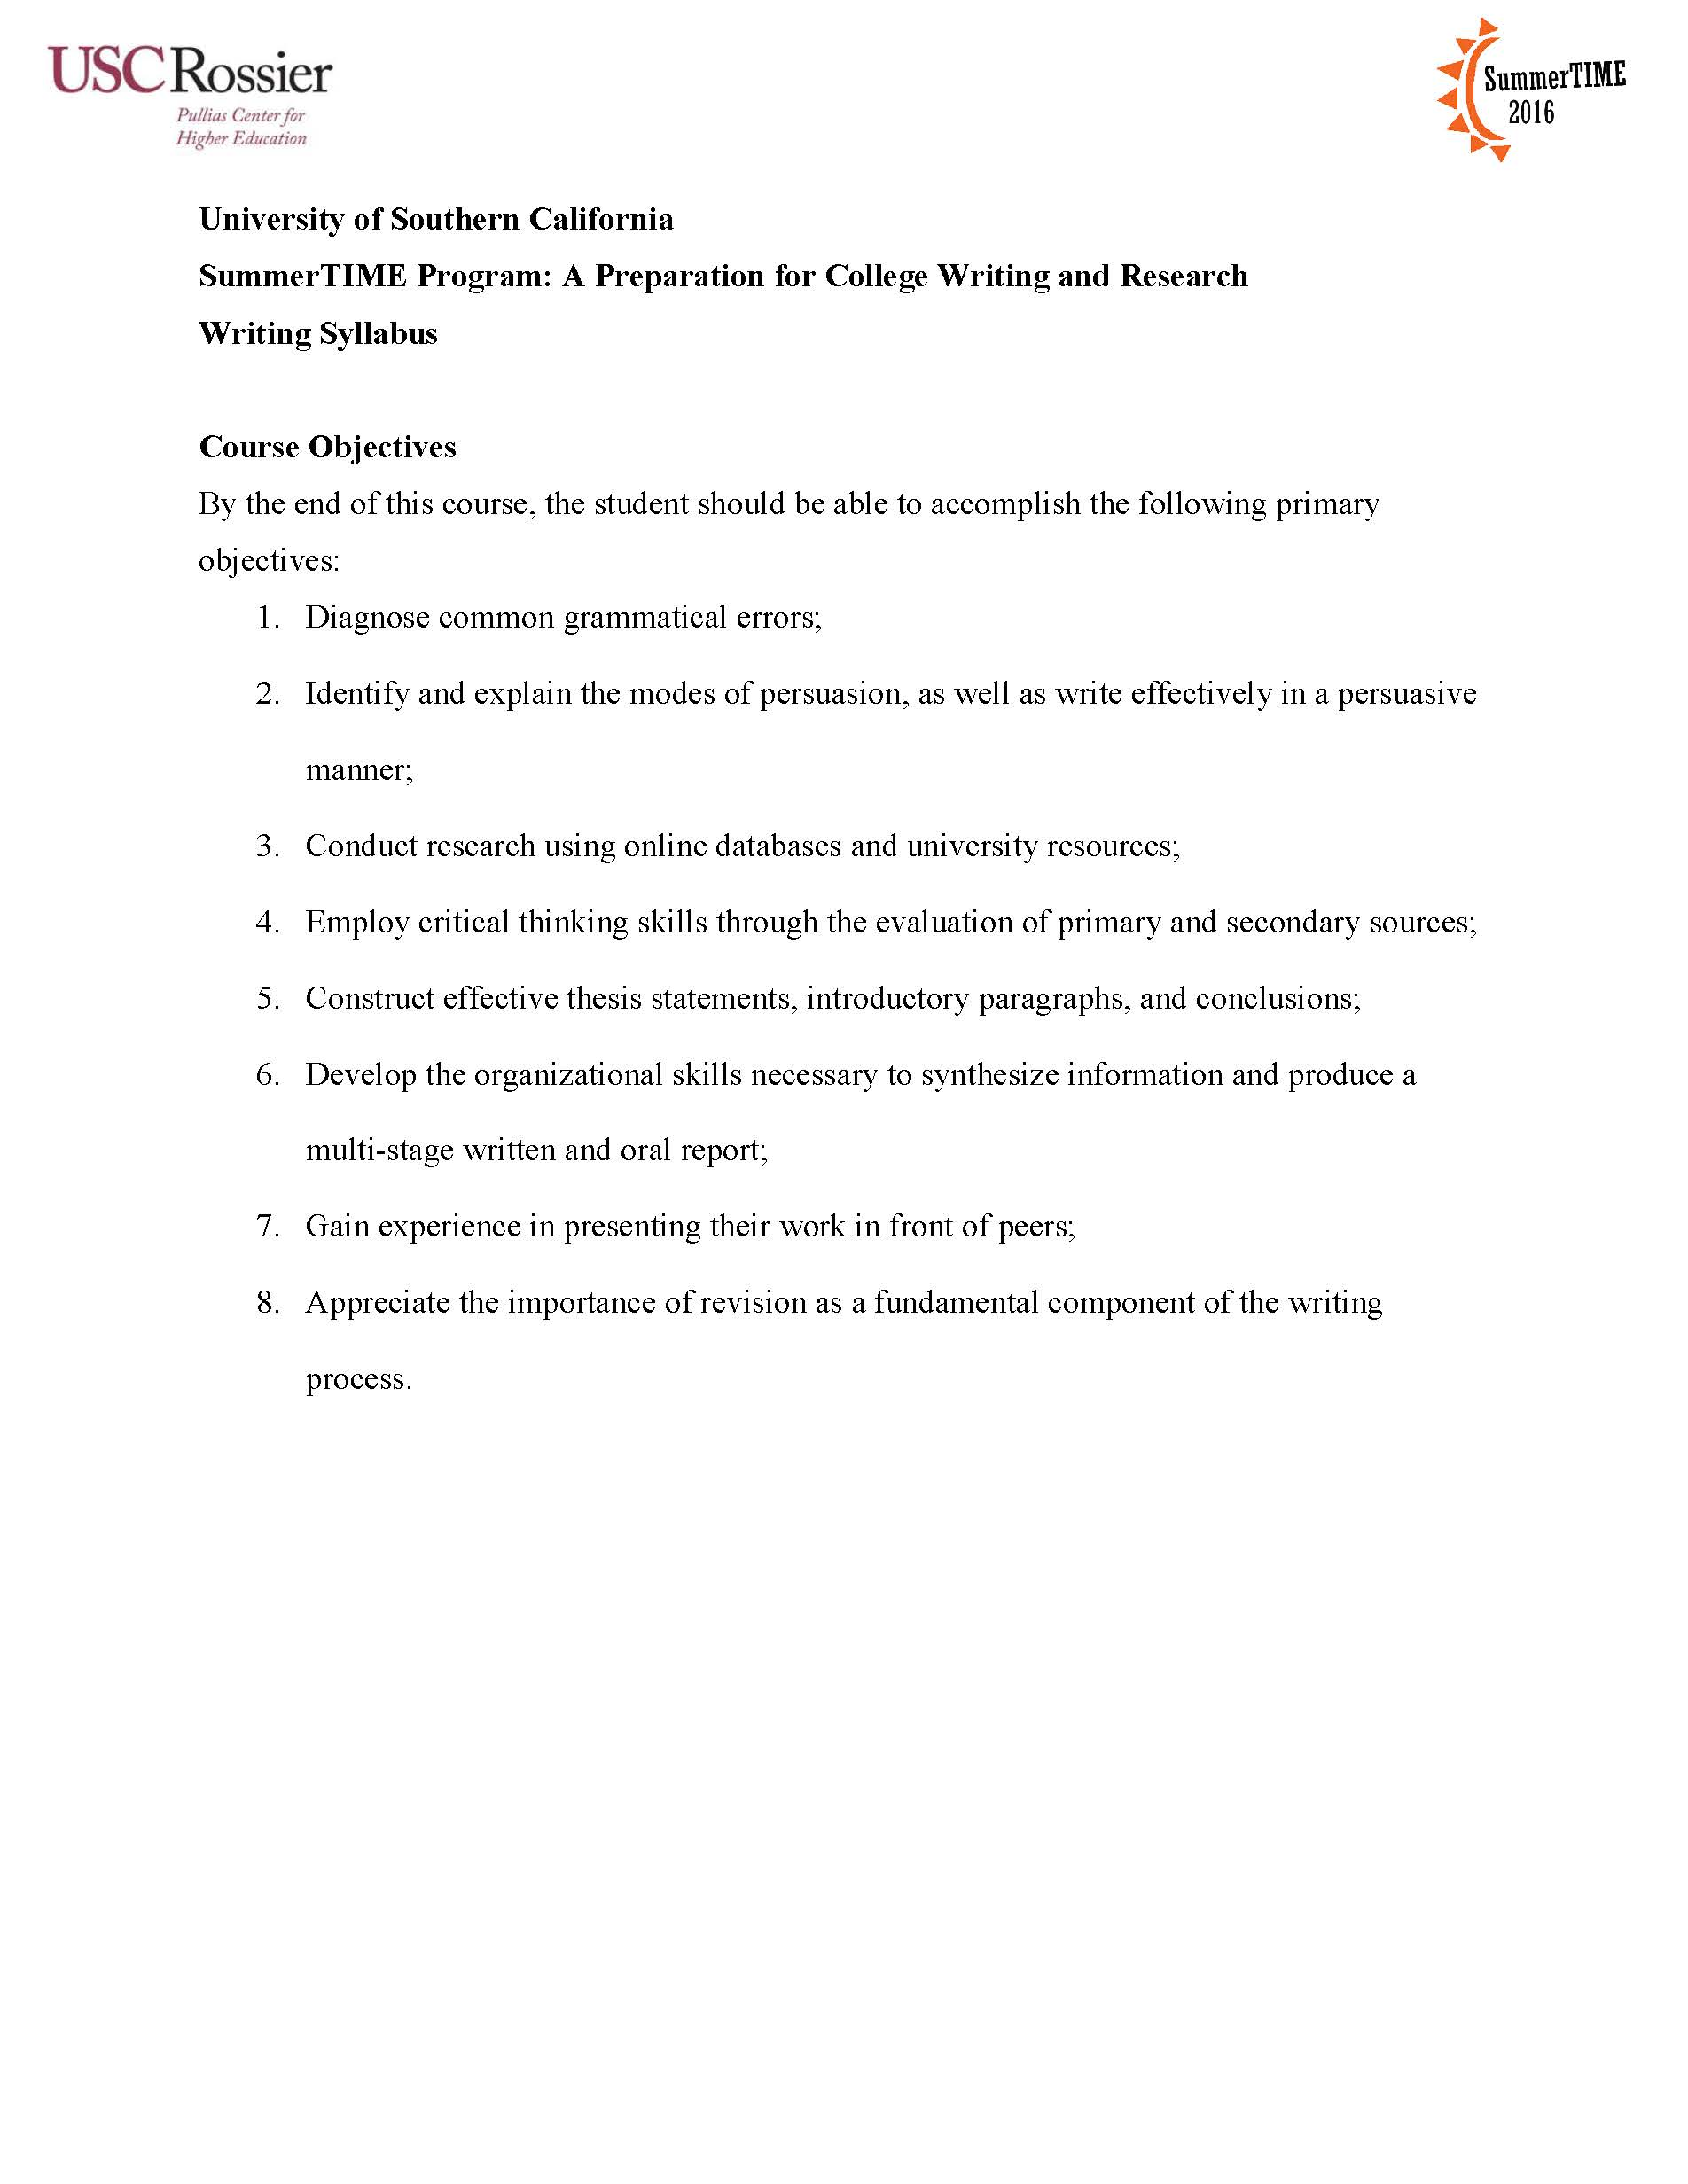 ST.Writing.Syllabus_FINAL (2)_With Logos_Page_1